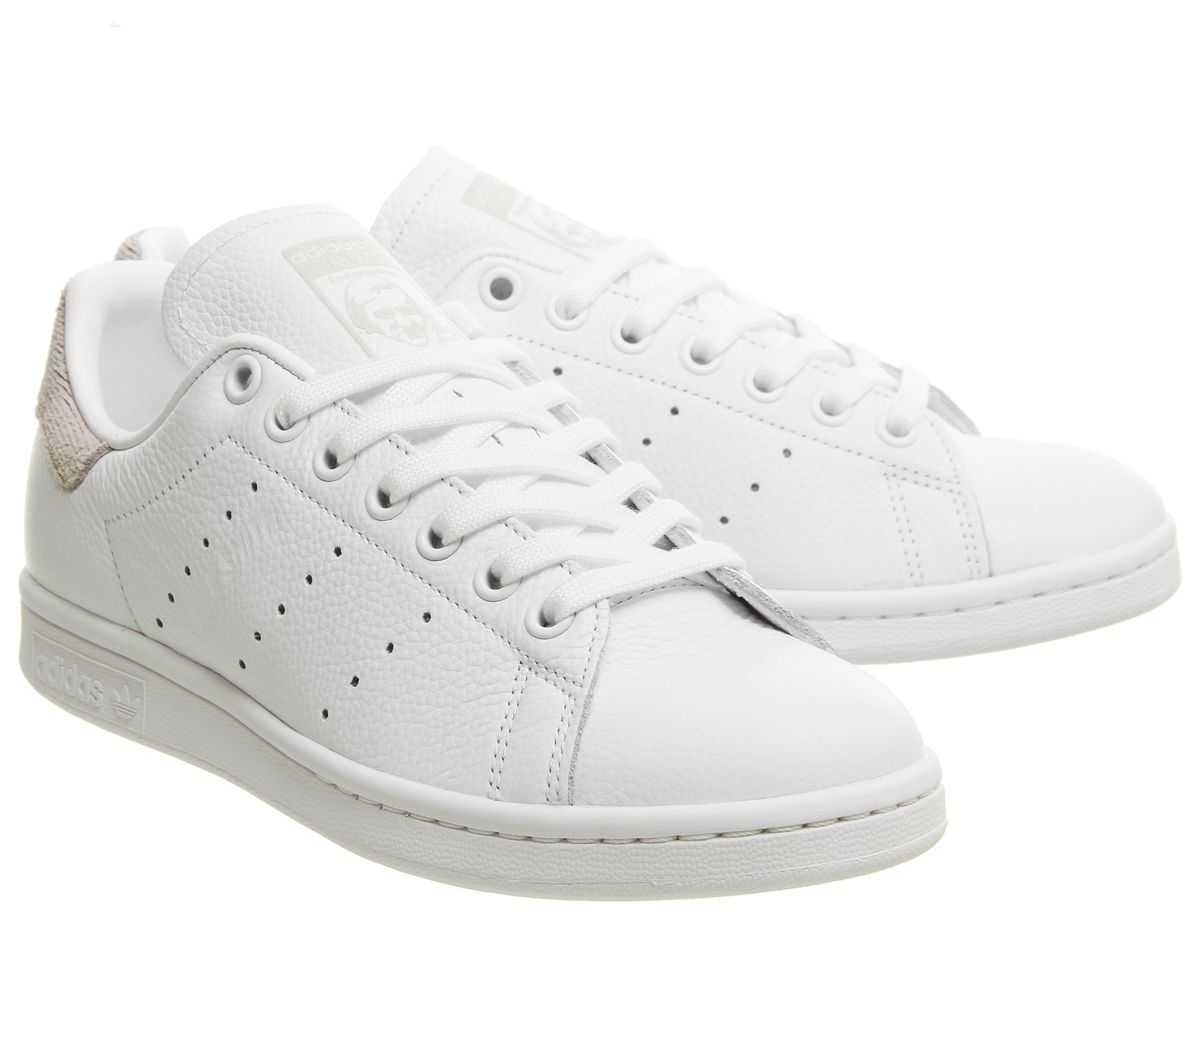 design de qualité 1b98c f80cb Womens Adidas Stan Smith Trainers White Orchid Tint Trainers ...